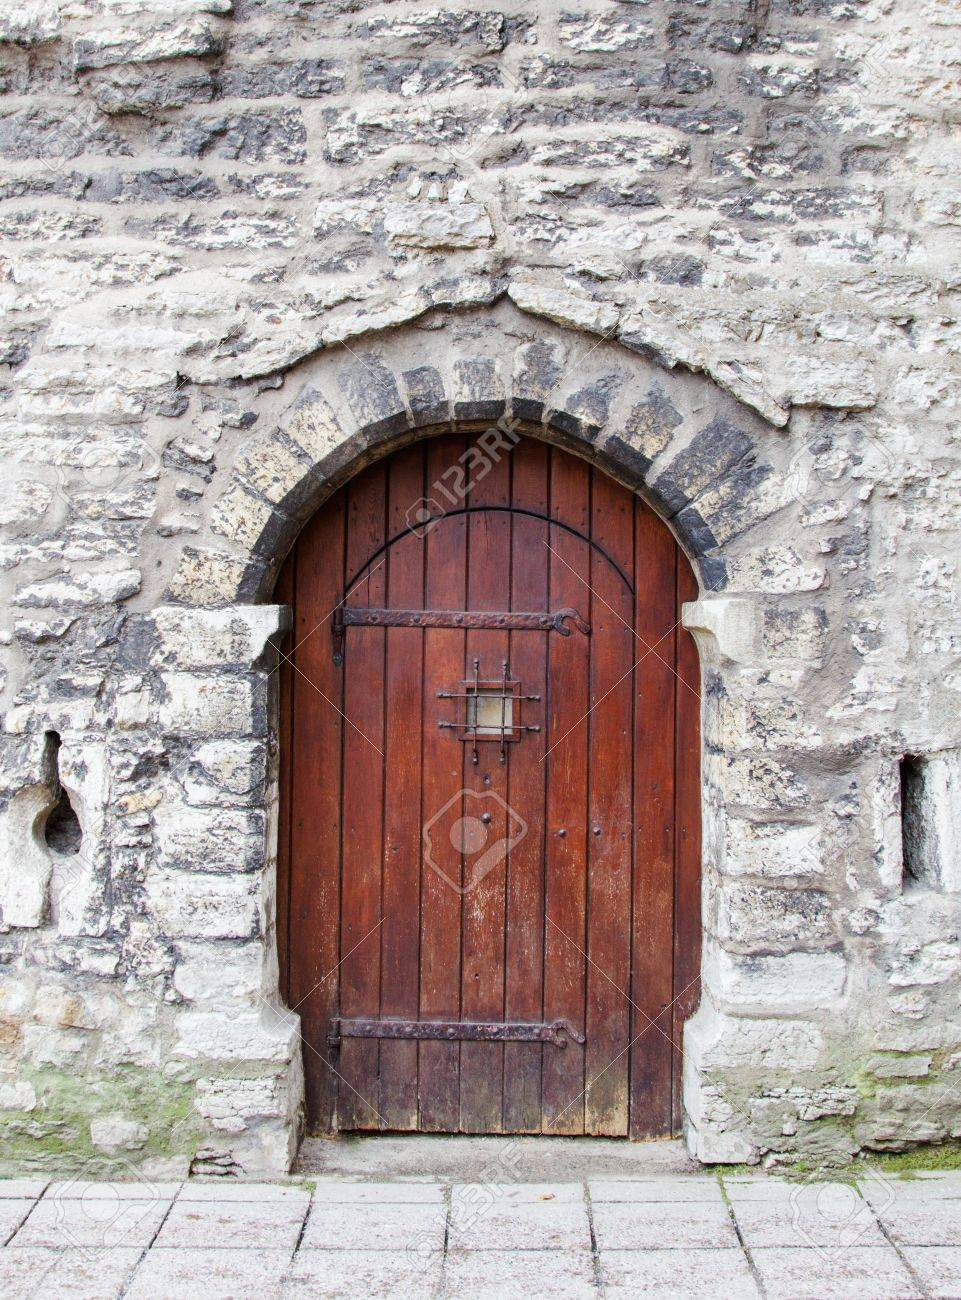 Old wooden arched door in stone wall. Stock Photo - 16556037 & Old Wooden Arched Door In Stone Wall. Stock Photo Picture And ... Pezcame.Com